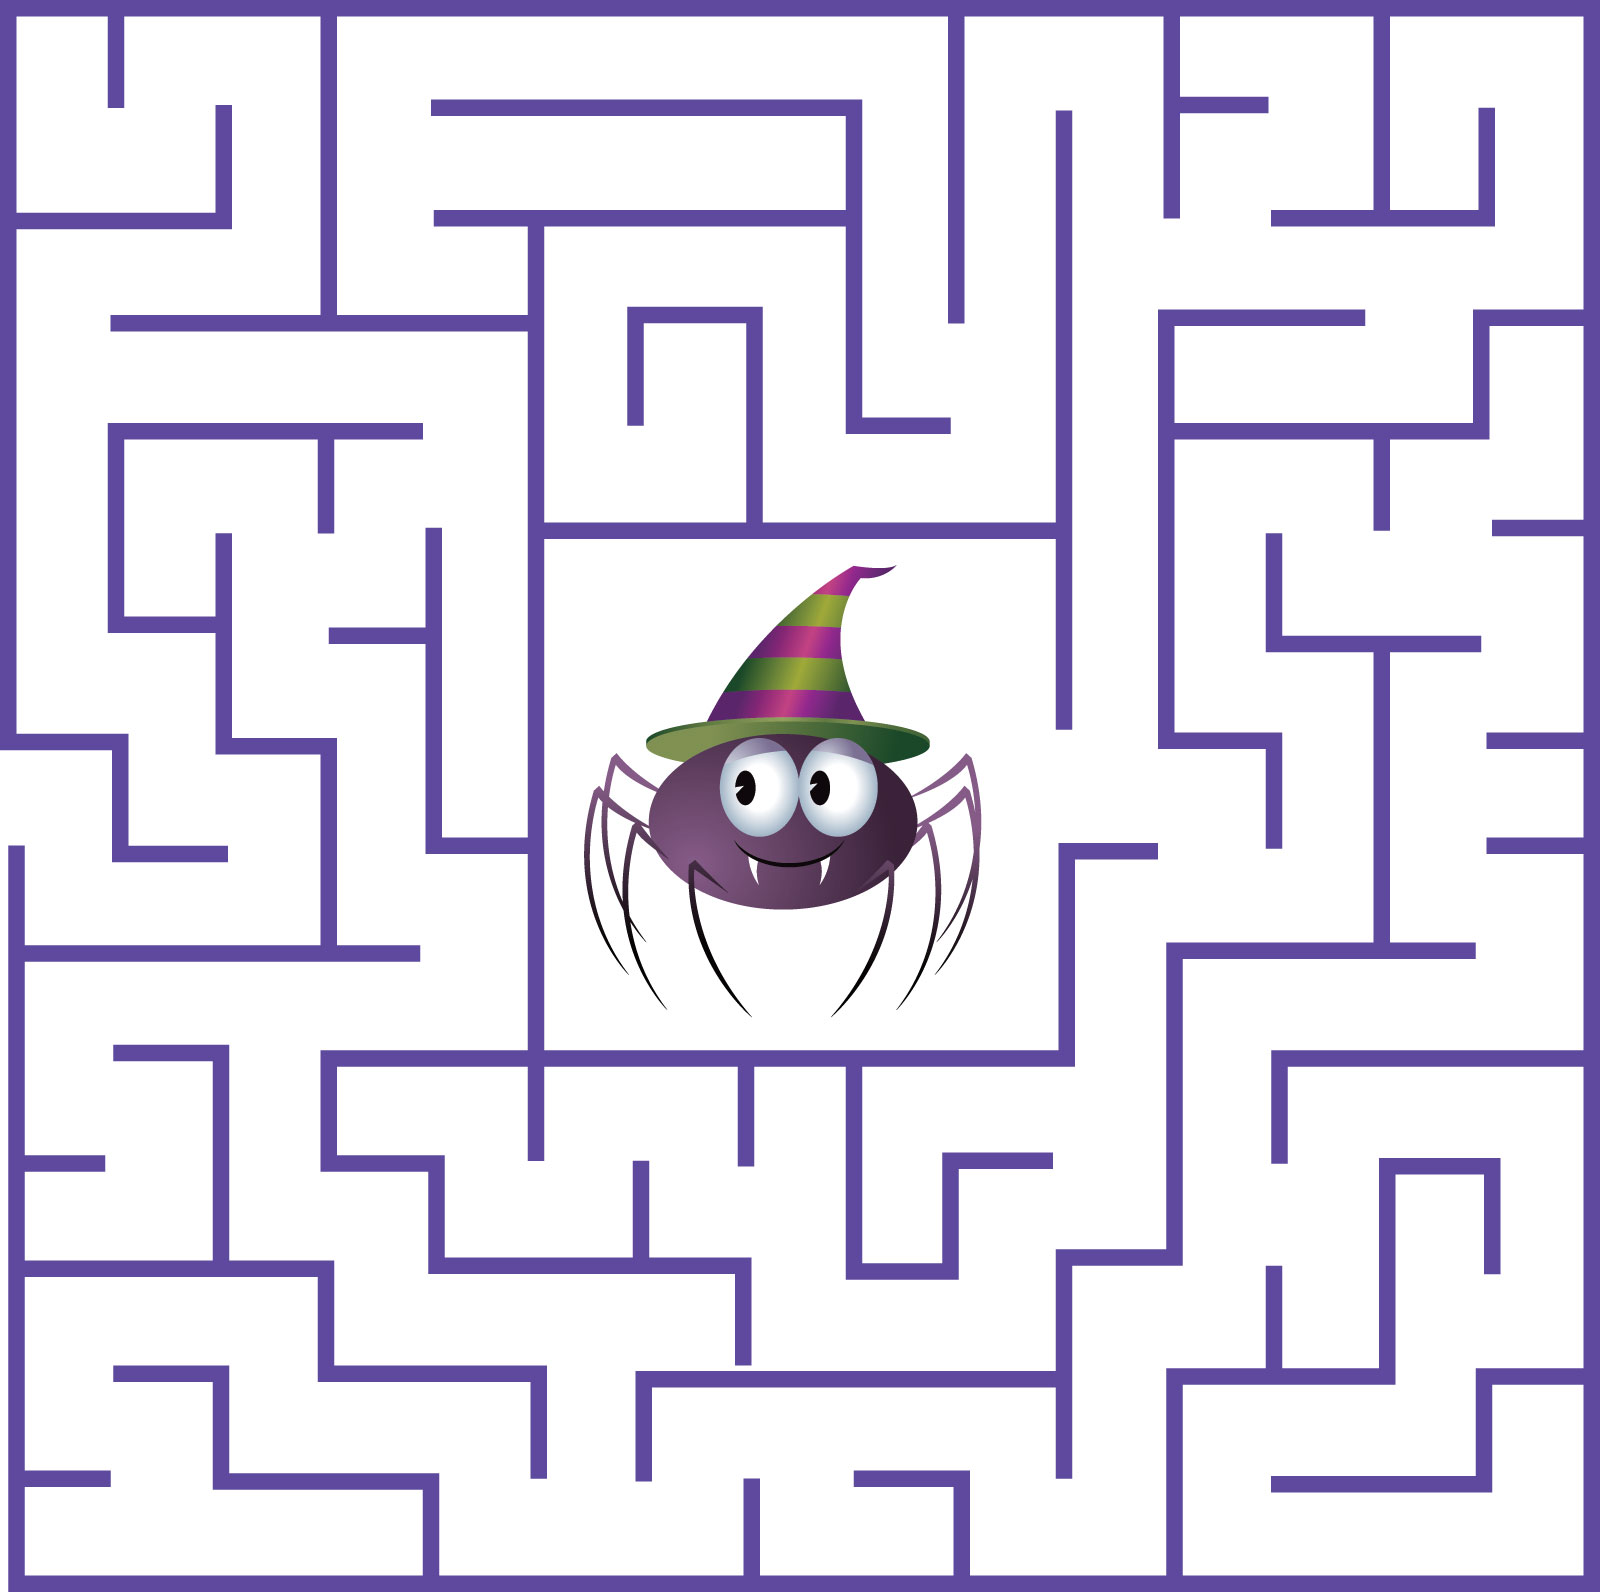 worksheet Kids Maze Worksheet 28 free printable mazes for kids and adults kitty baby love halloween maze worksheets